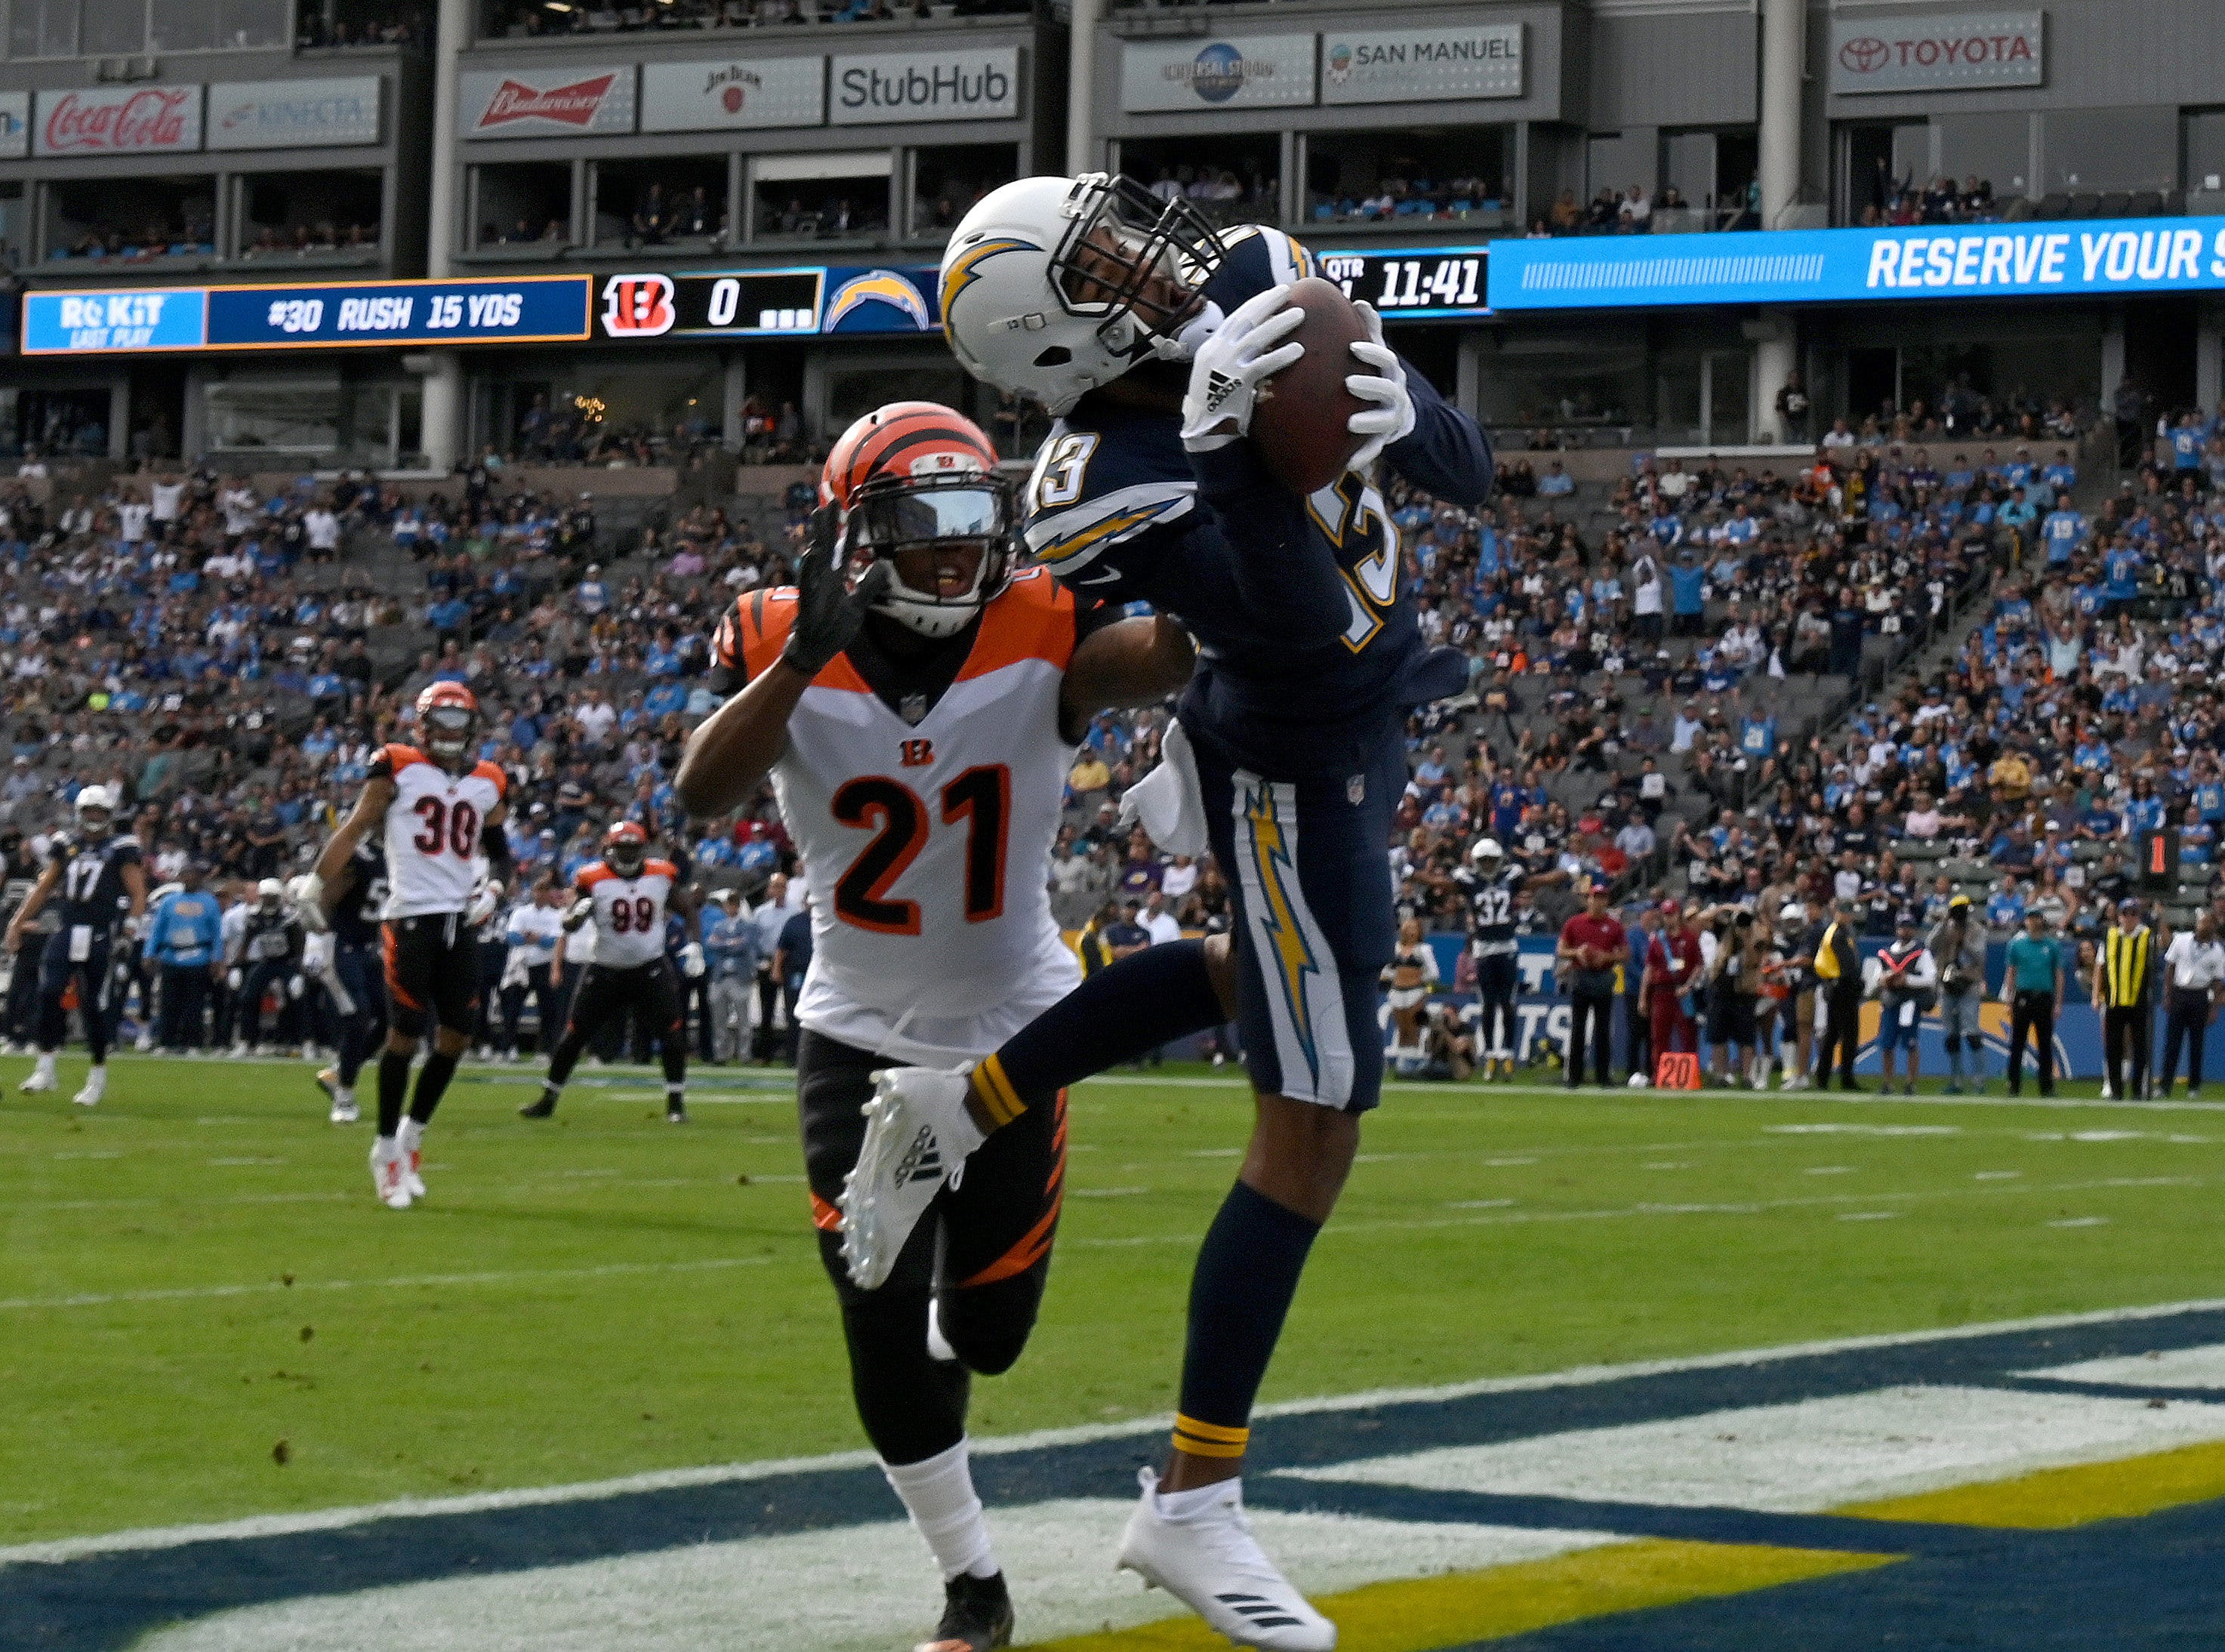 Chargers wide receiver Keenan Allen makes a touchdown catch in the first quarter against the Bengals.